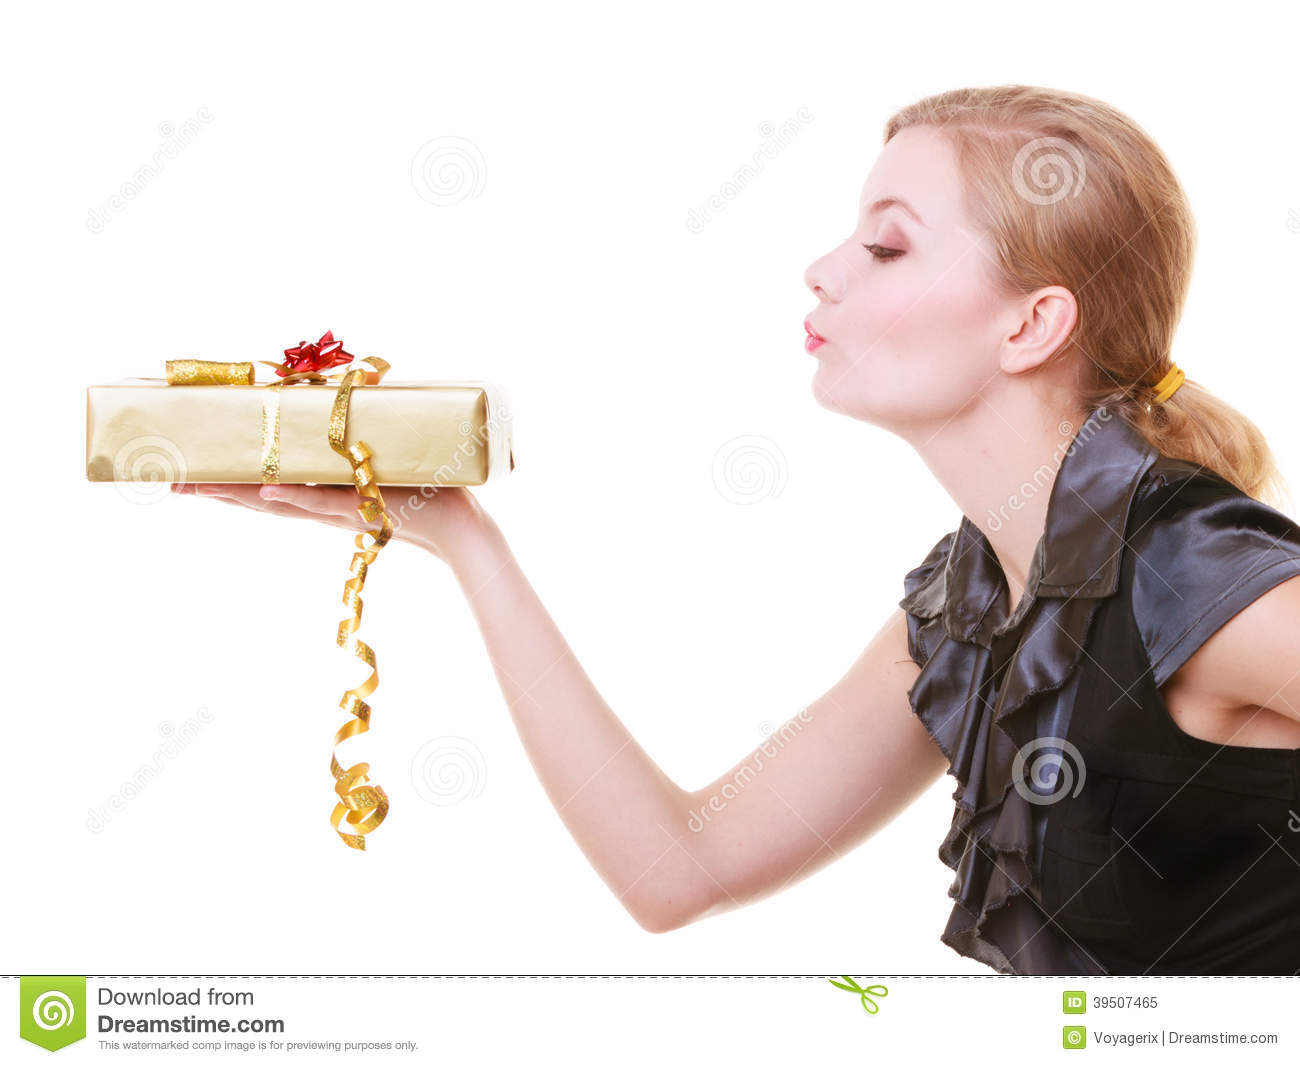 Blond girl in black dress holding red christmas gift box blowing kiss